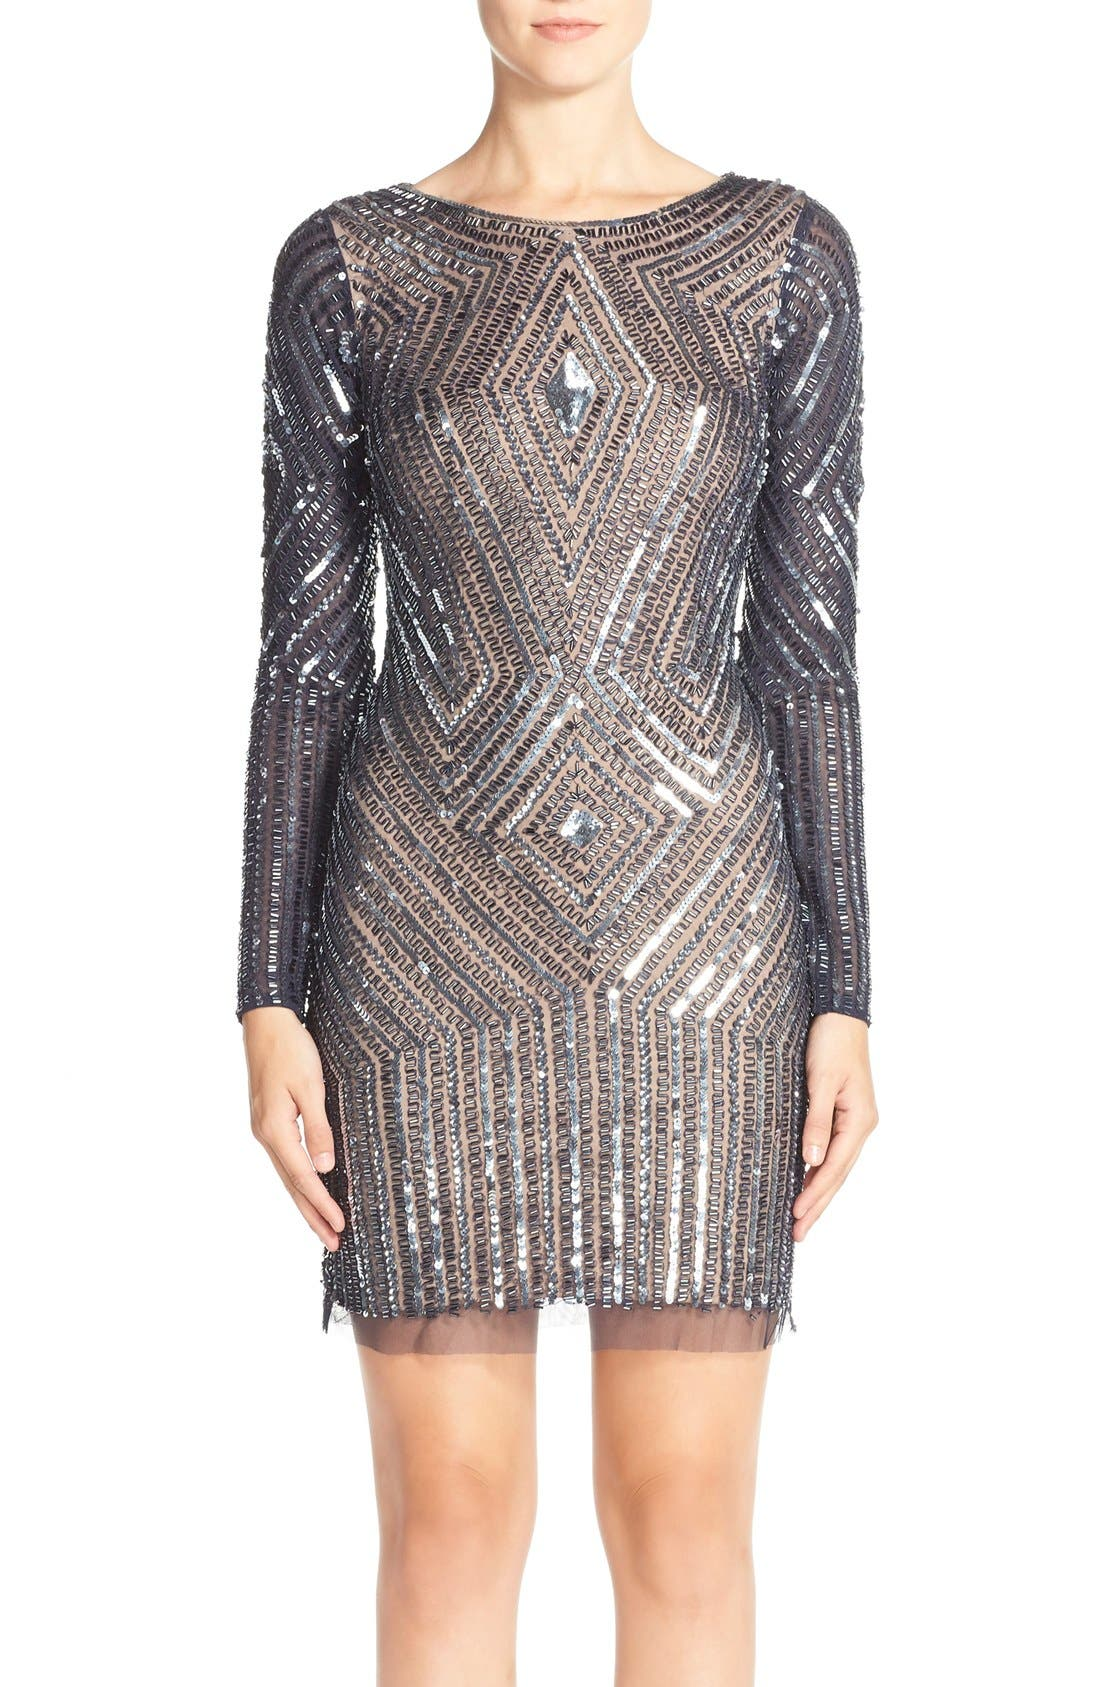 Alternate Image 1 Selected - Adrianna Papell Beaded Mesh Sheath Dress